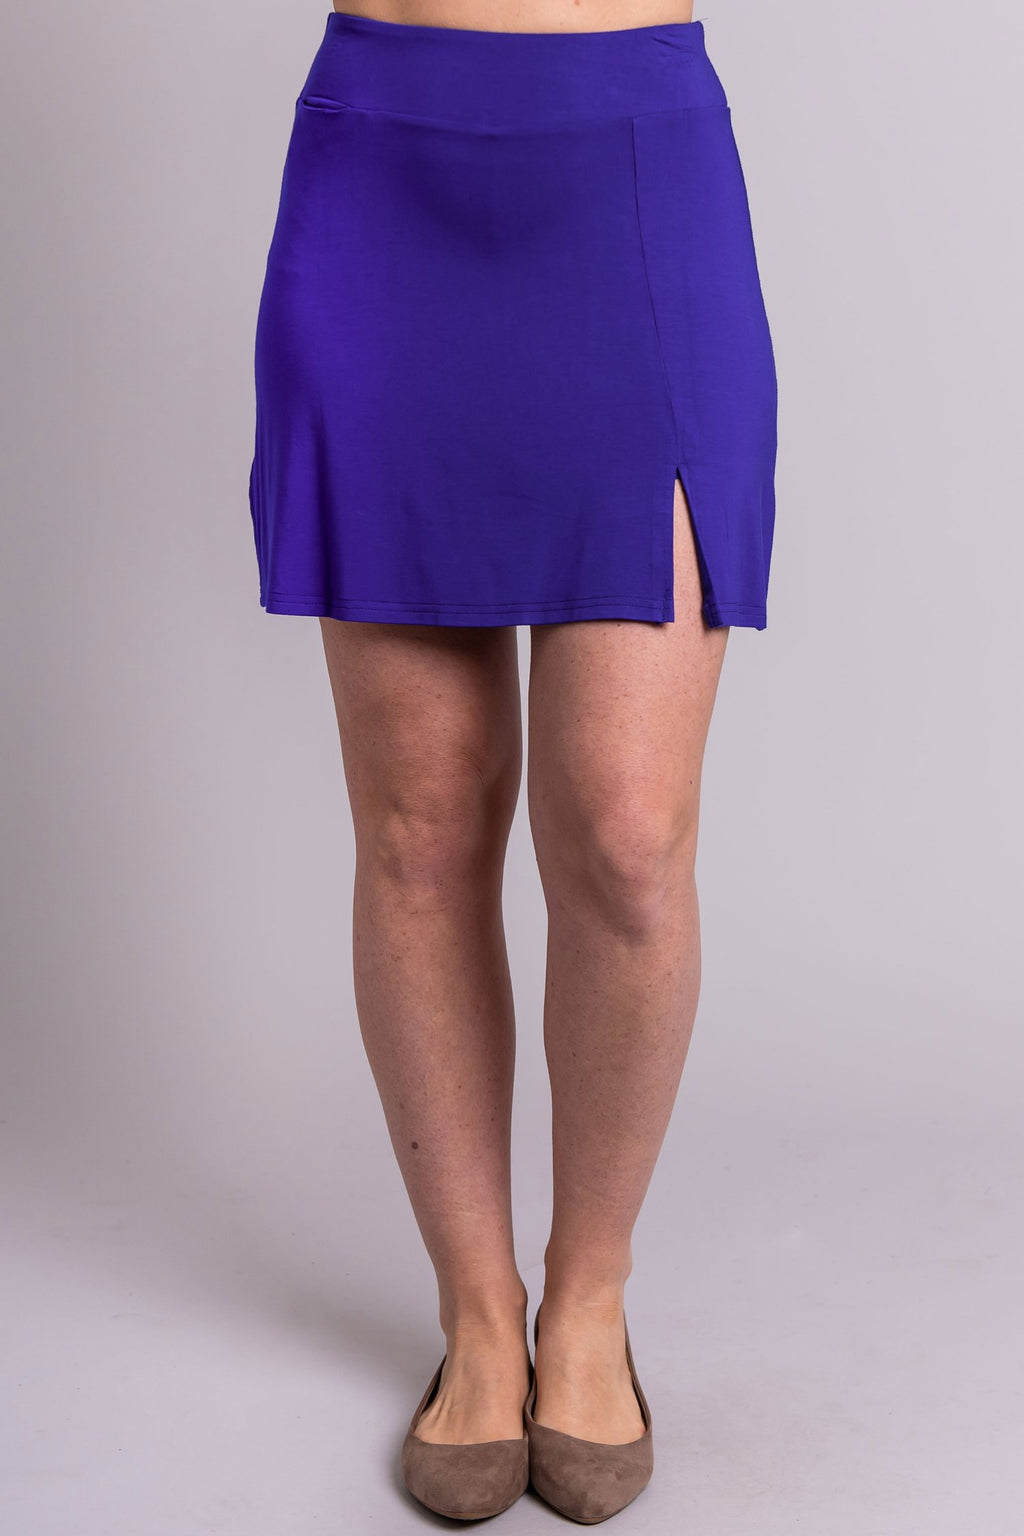 Melly Skort, Violet, Bamboo - Blue Sky Clothing Co